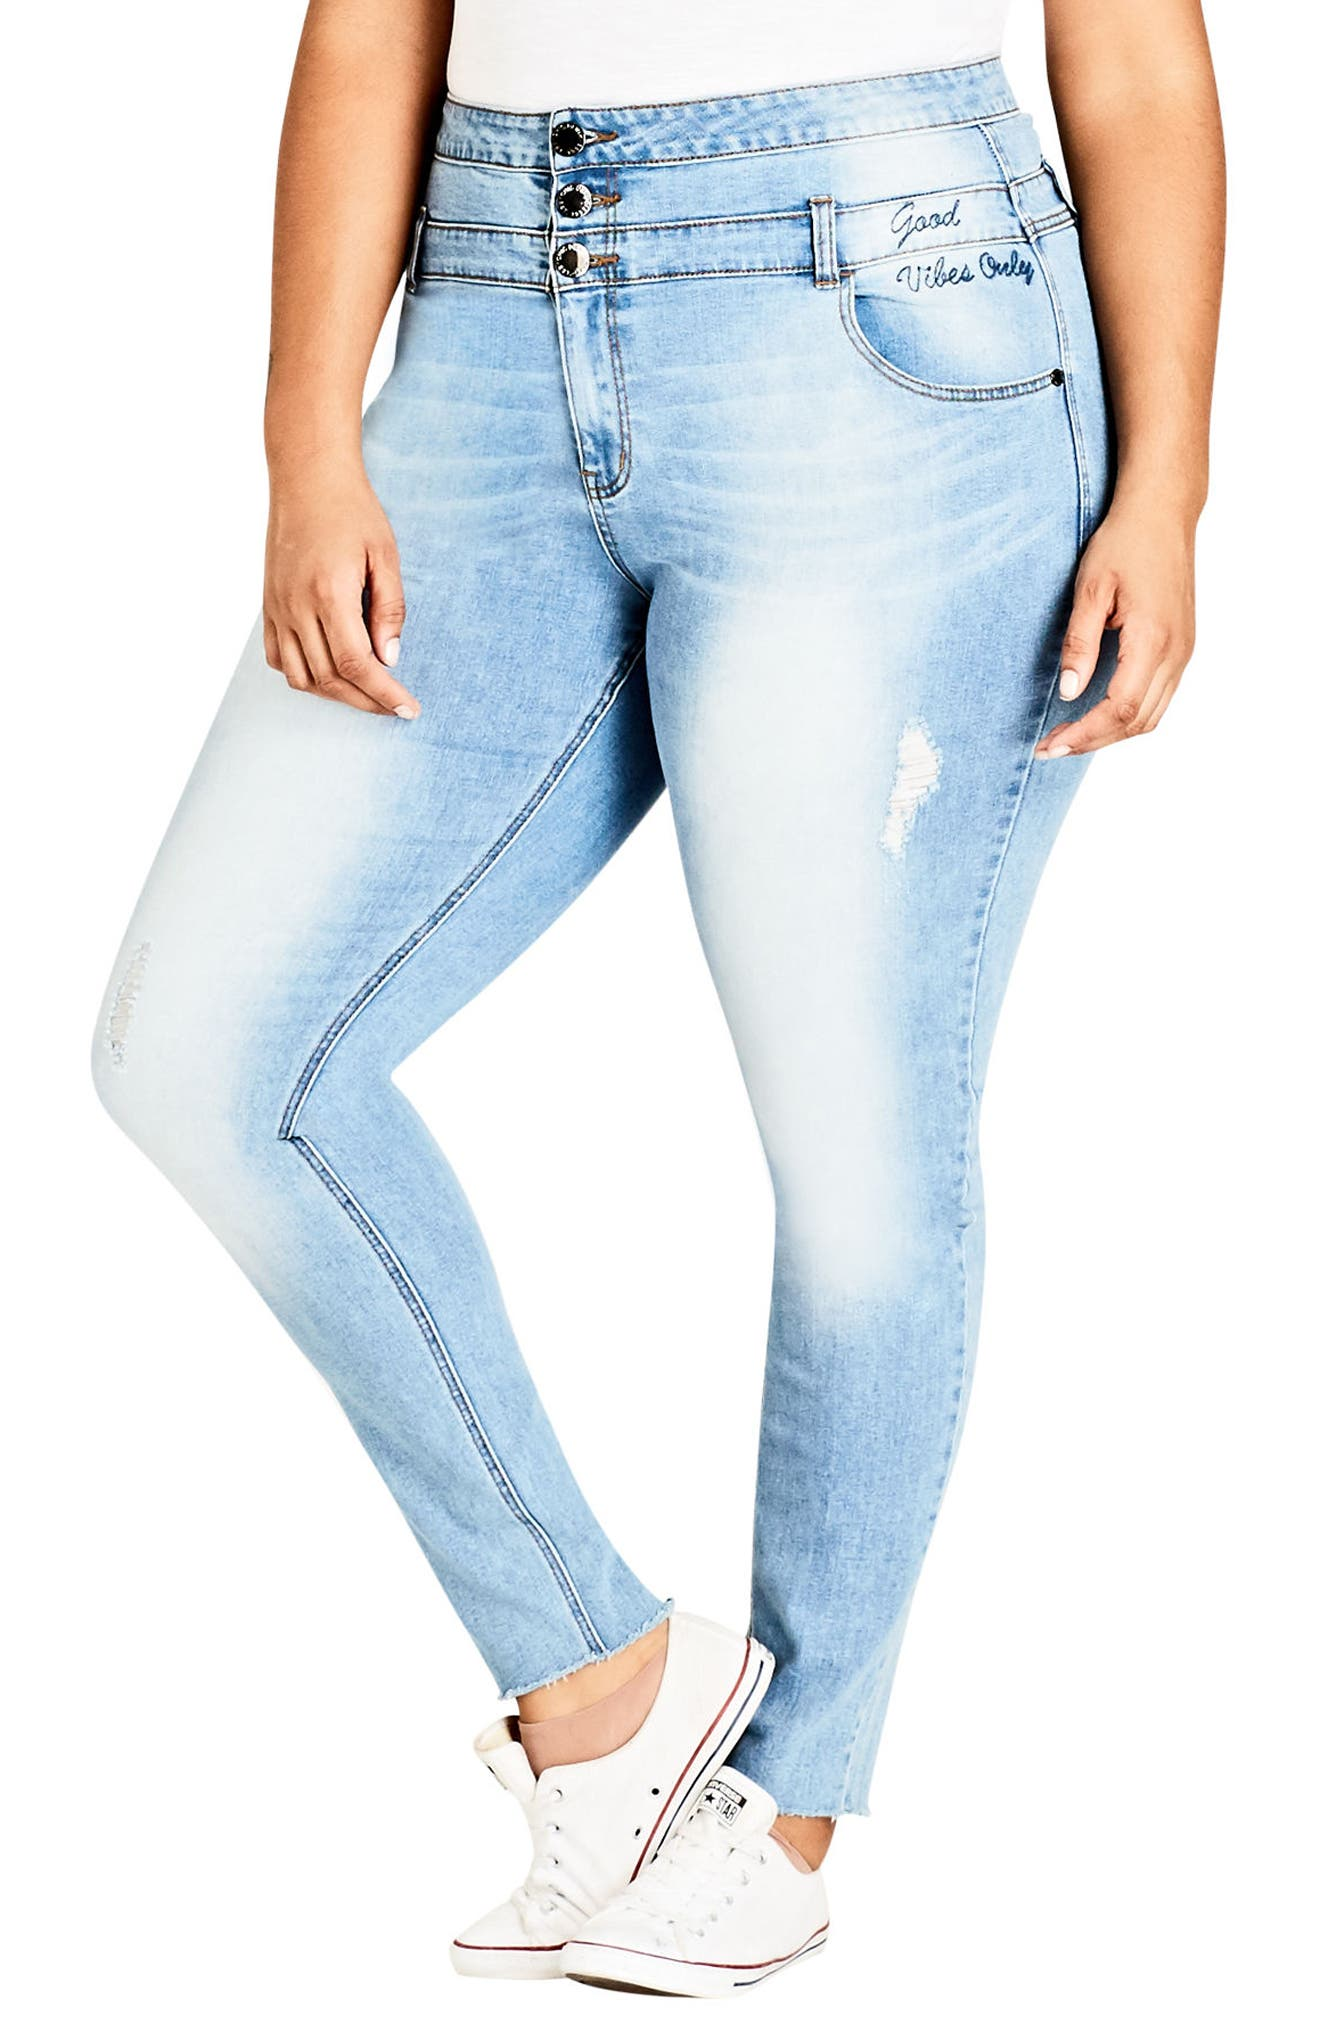 City Chic Harley Vibes Ripped Corset Skinny Jeans (Plus Size)